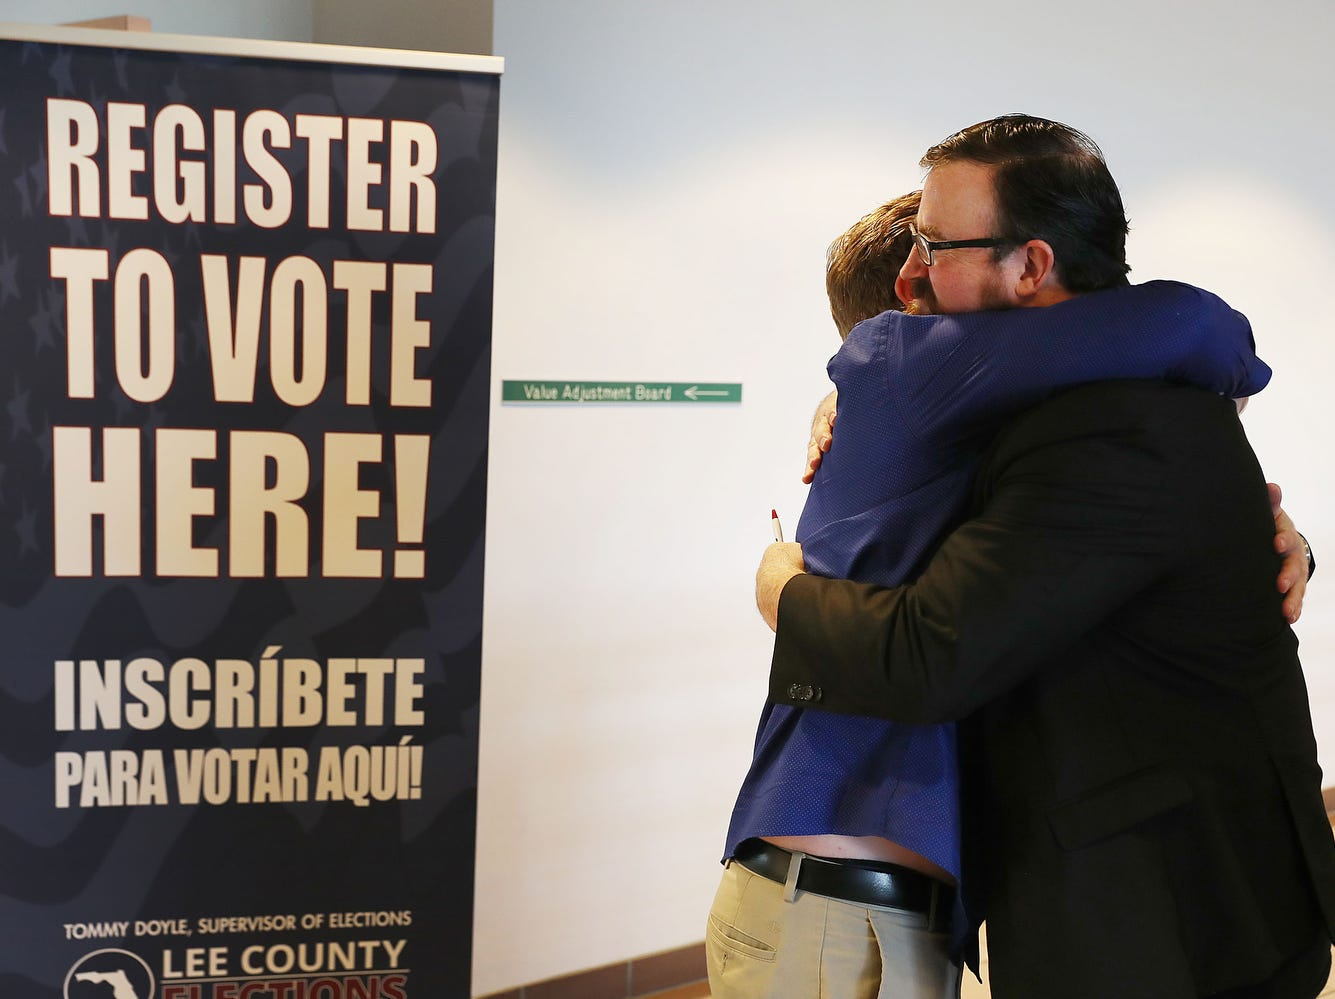 Lance Wissinger, left, and Neil Volz hug after turning in their voter registration forms at the Lee County Supervisor of Elections office in Fort Myers, Fla. Both with felony records, are now able to register to vote for the first time after Amendment 4 took effect, which  automatically restores voting rights to most felons.